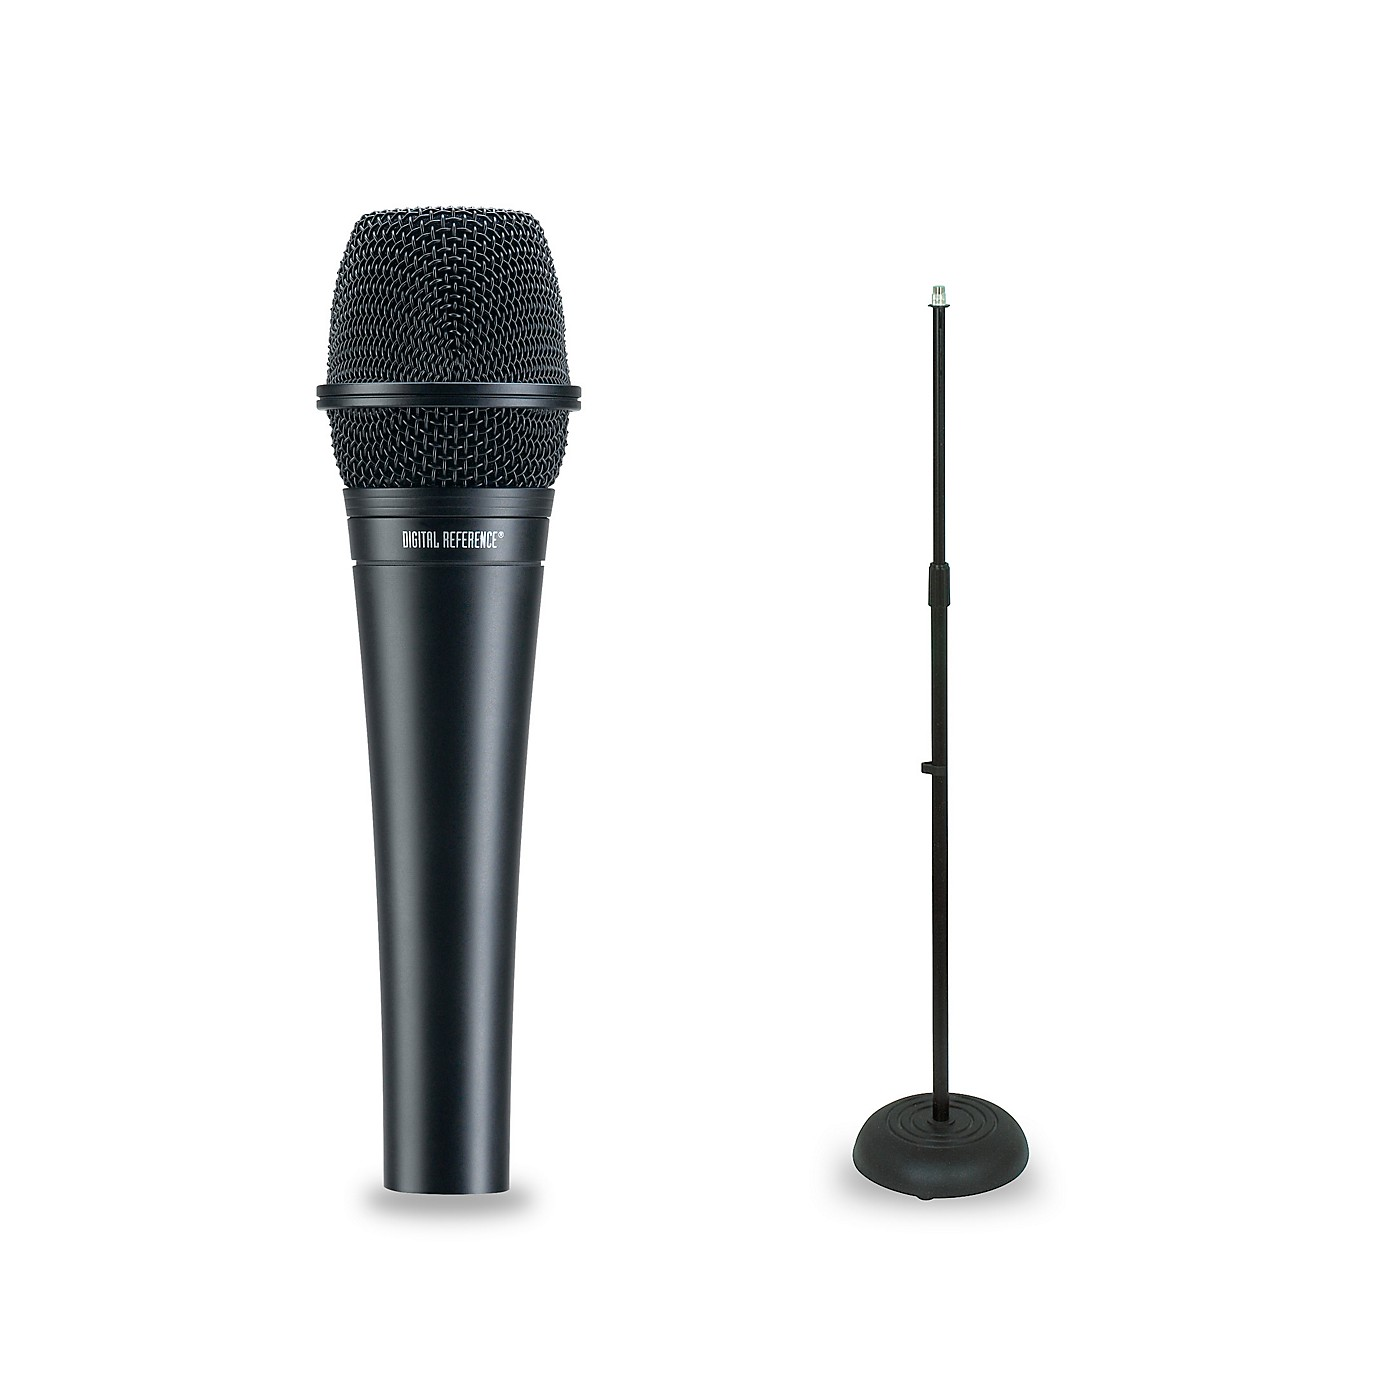 Digital Reference DRV200 Dynamic Lead Vocal Microphone and Mic Stand Package thumbnail